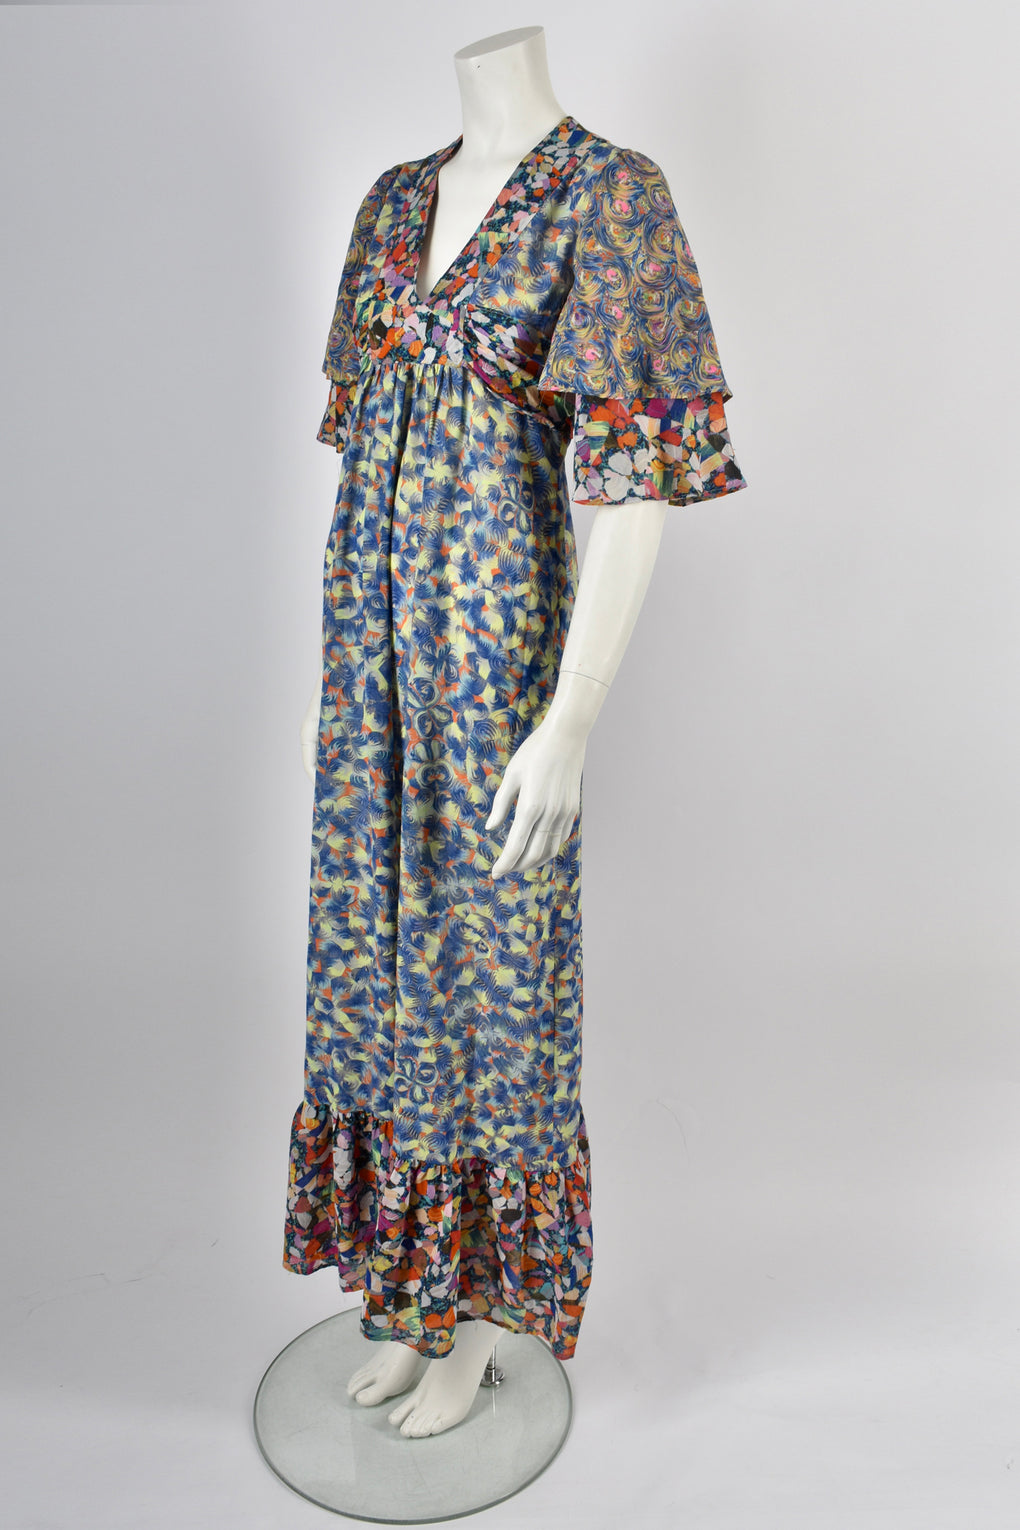 EARLYBIRD 70s marble print dress / M-L